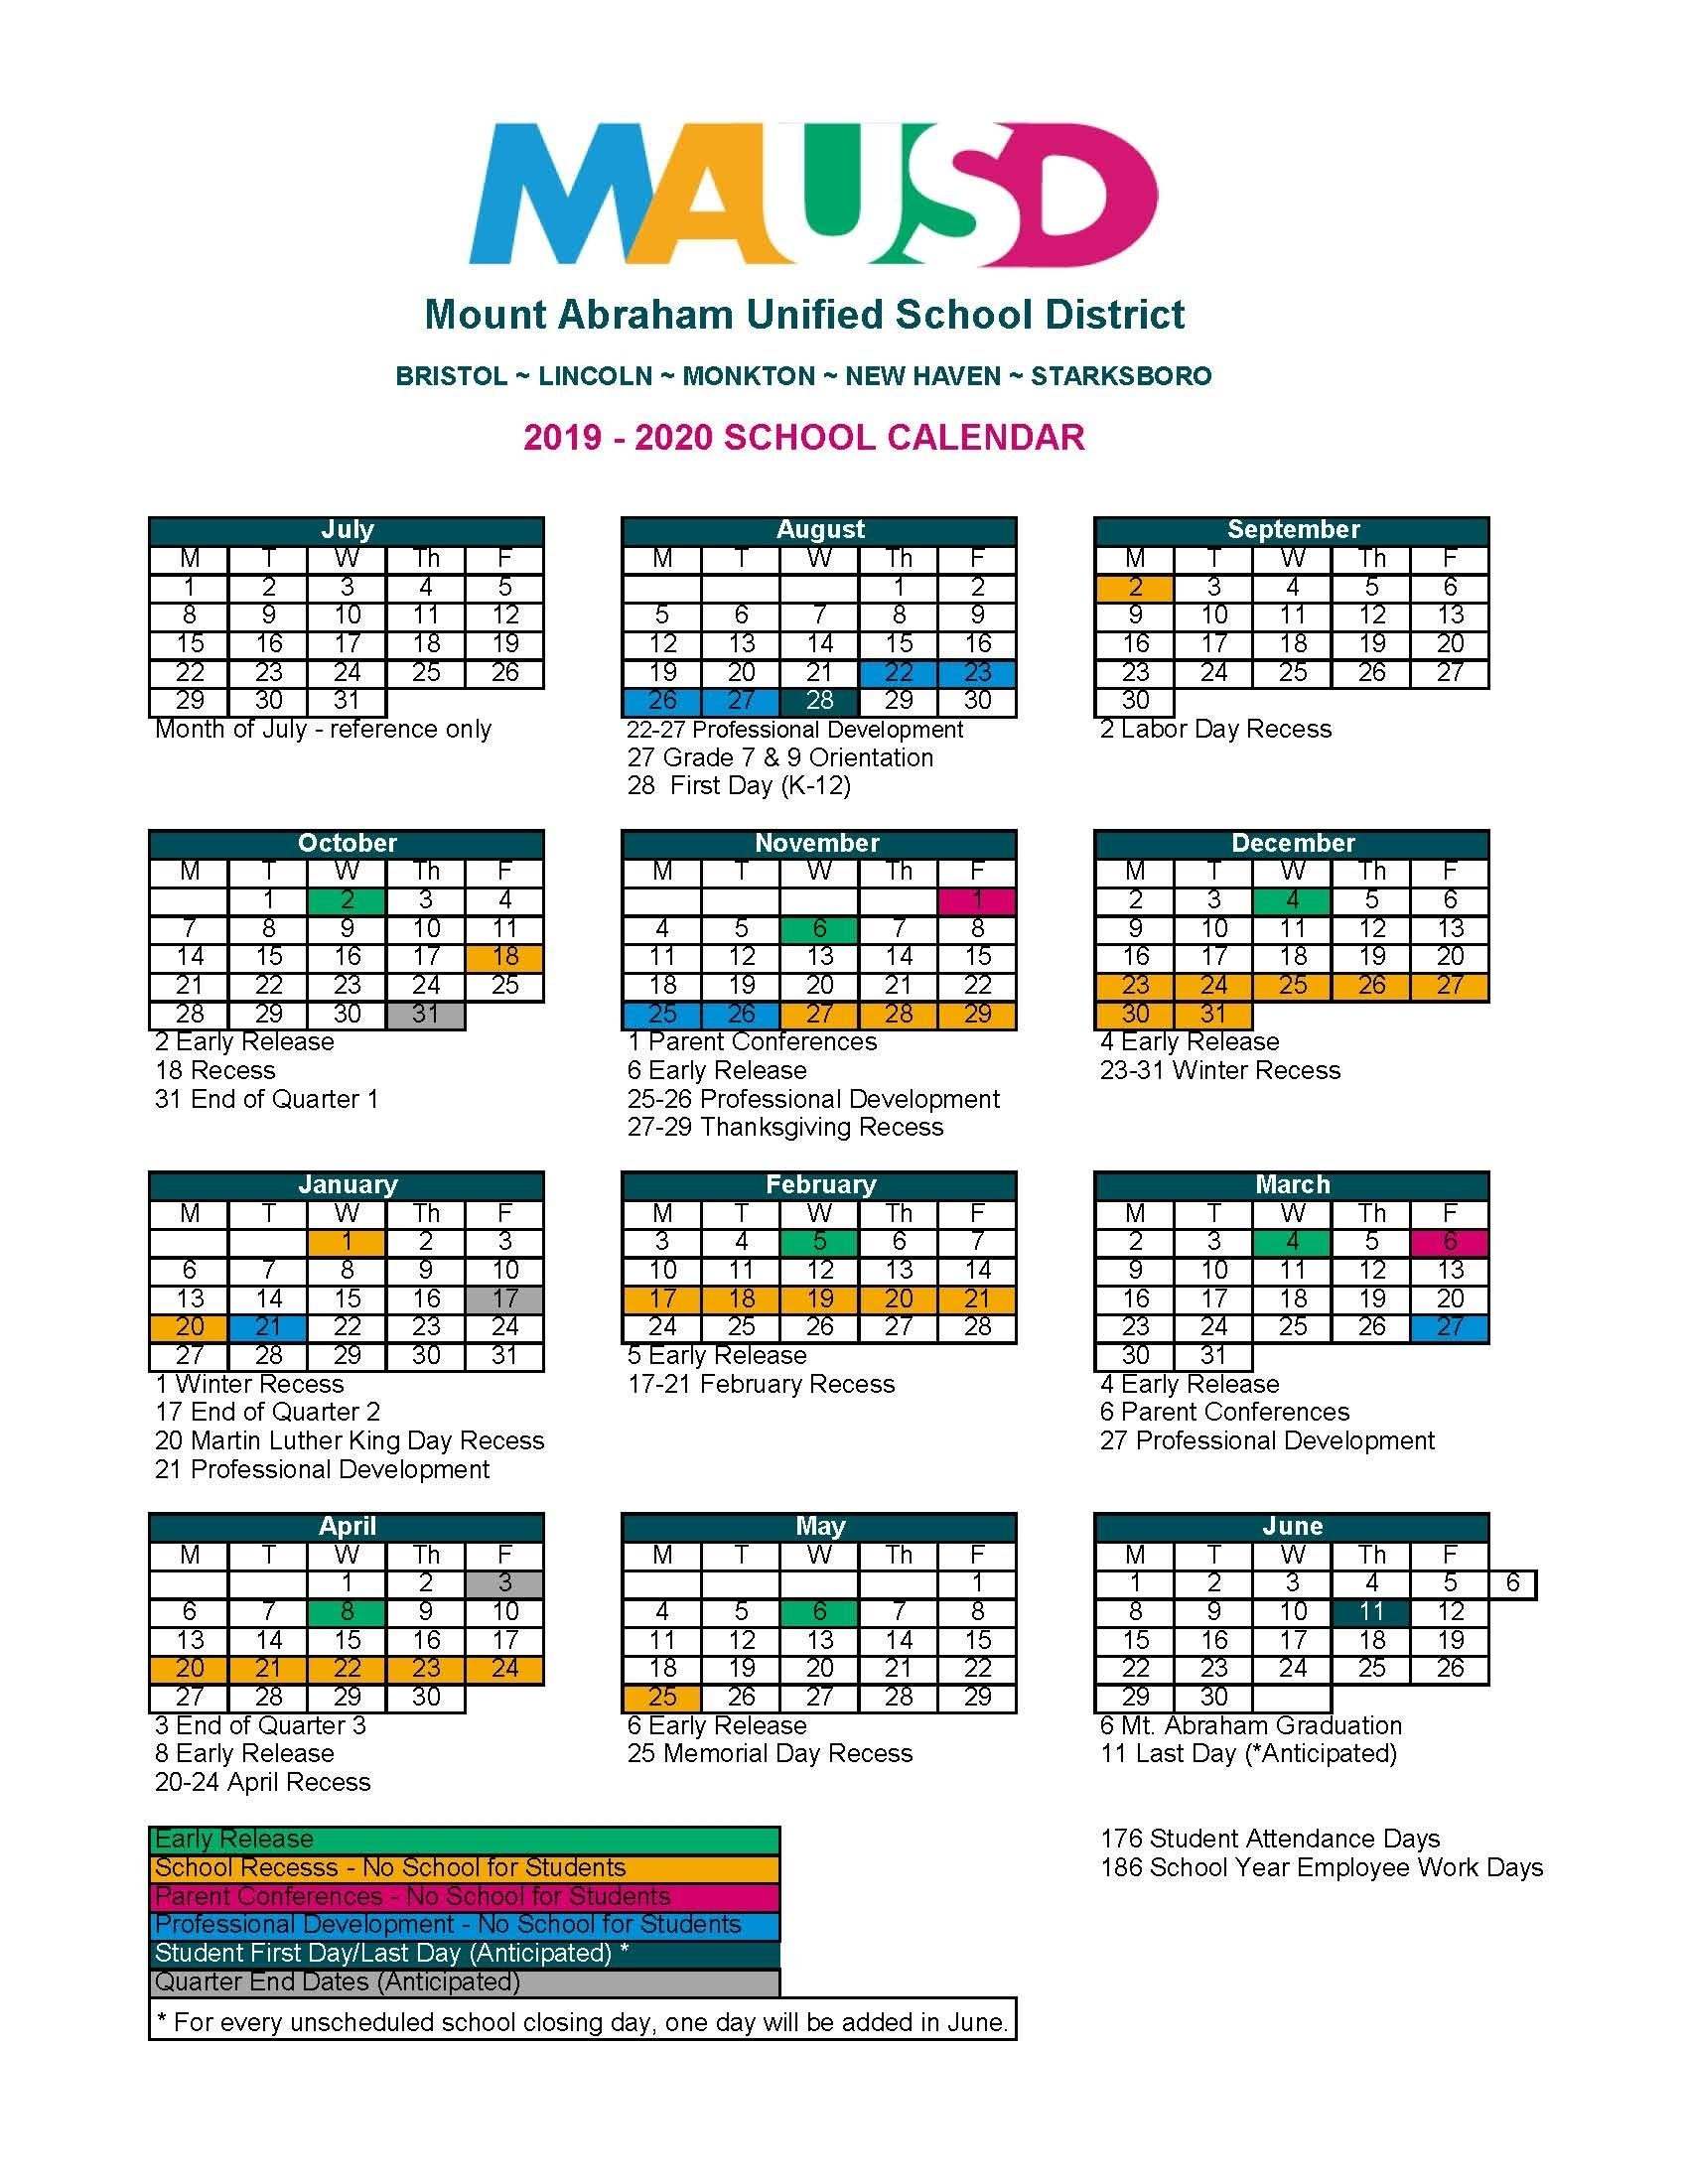 School Calendar - Mausd_U Of K School Calendar